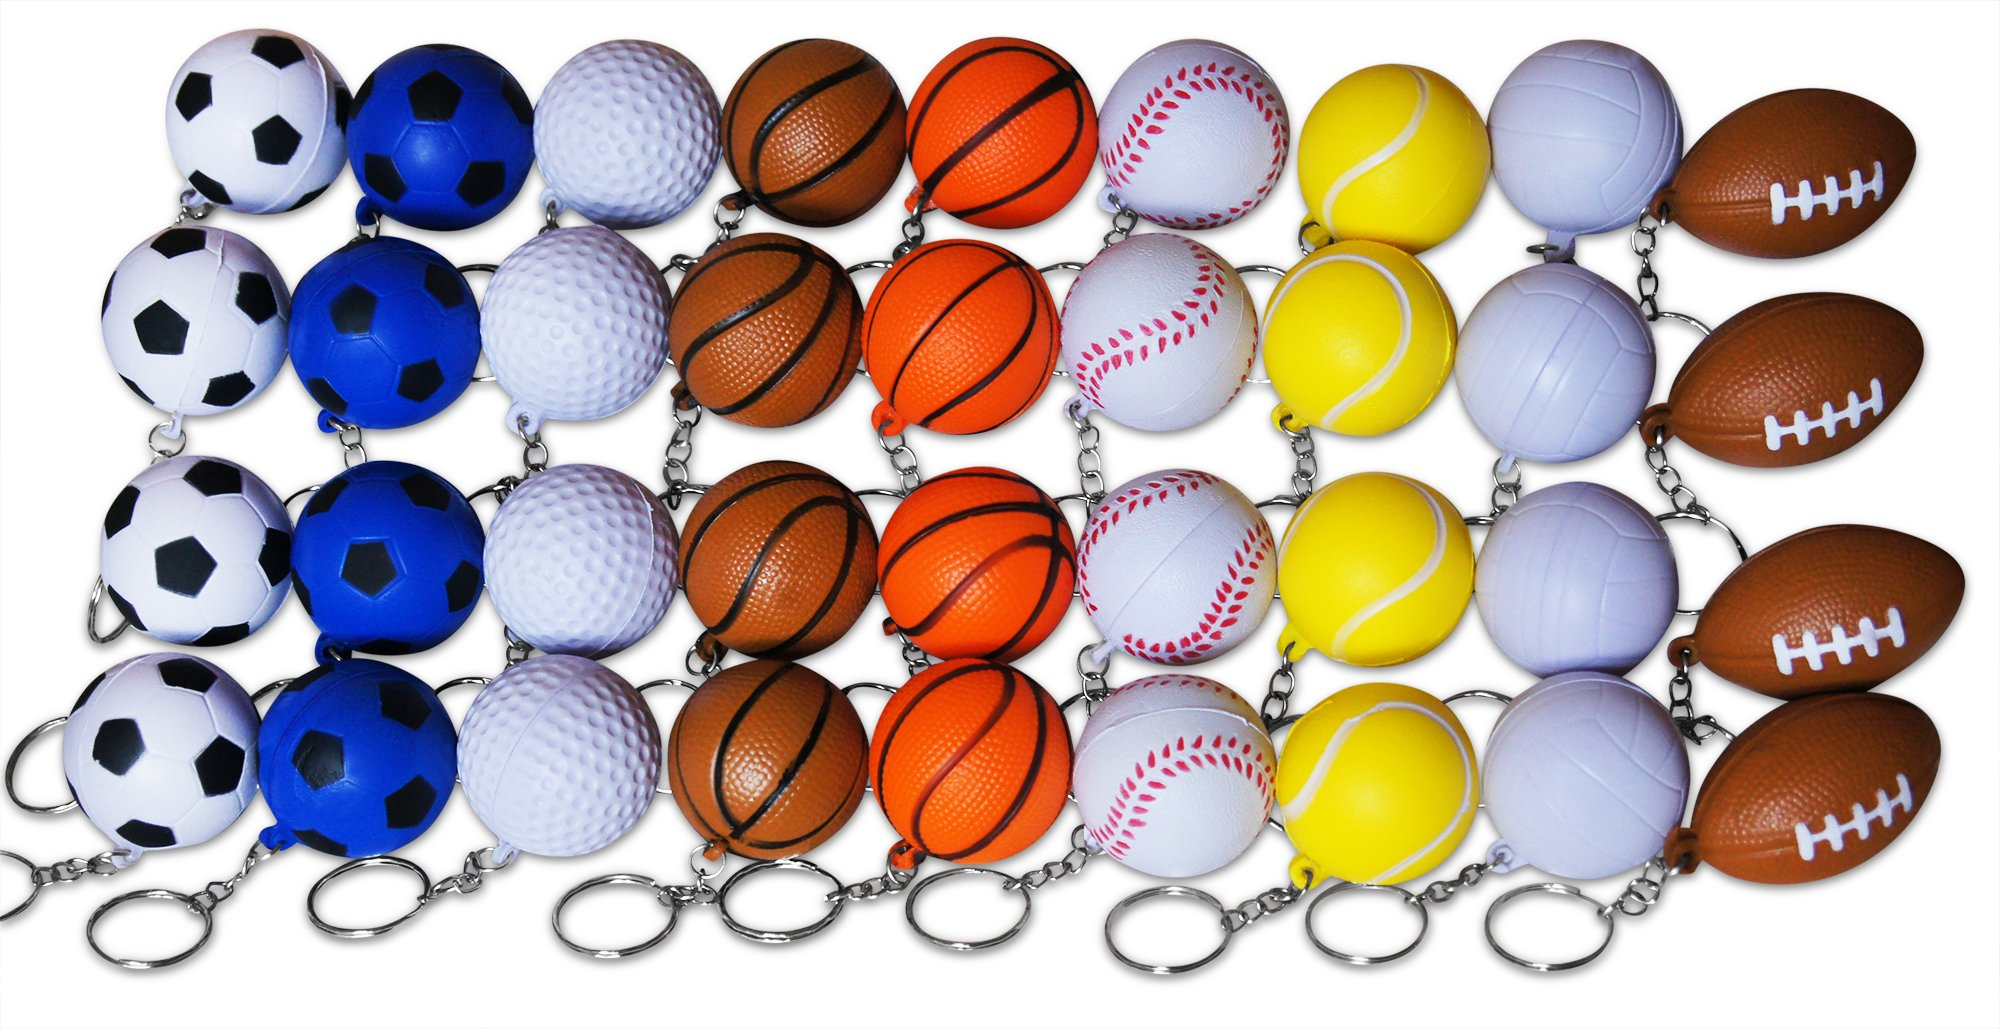 Novel Merk 36-Piece Sports Ball Keychains Pack for Kids Party Favors & School Carnival Prizes Includes 4 Each of 9 Different Designs